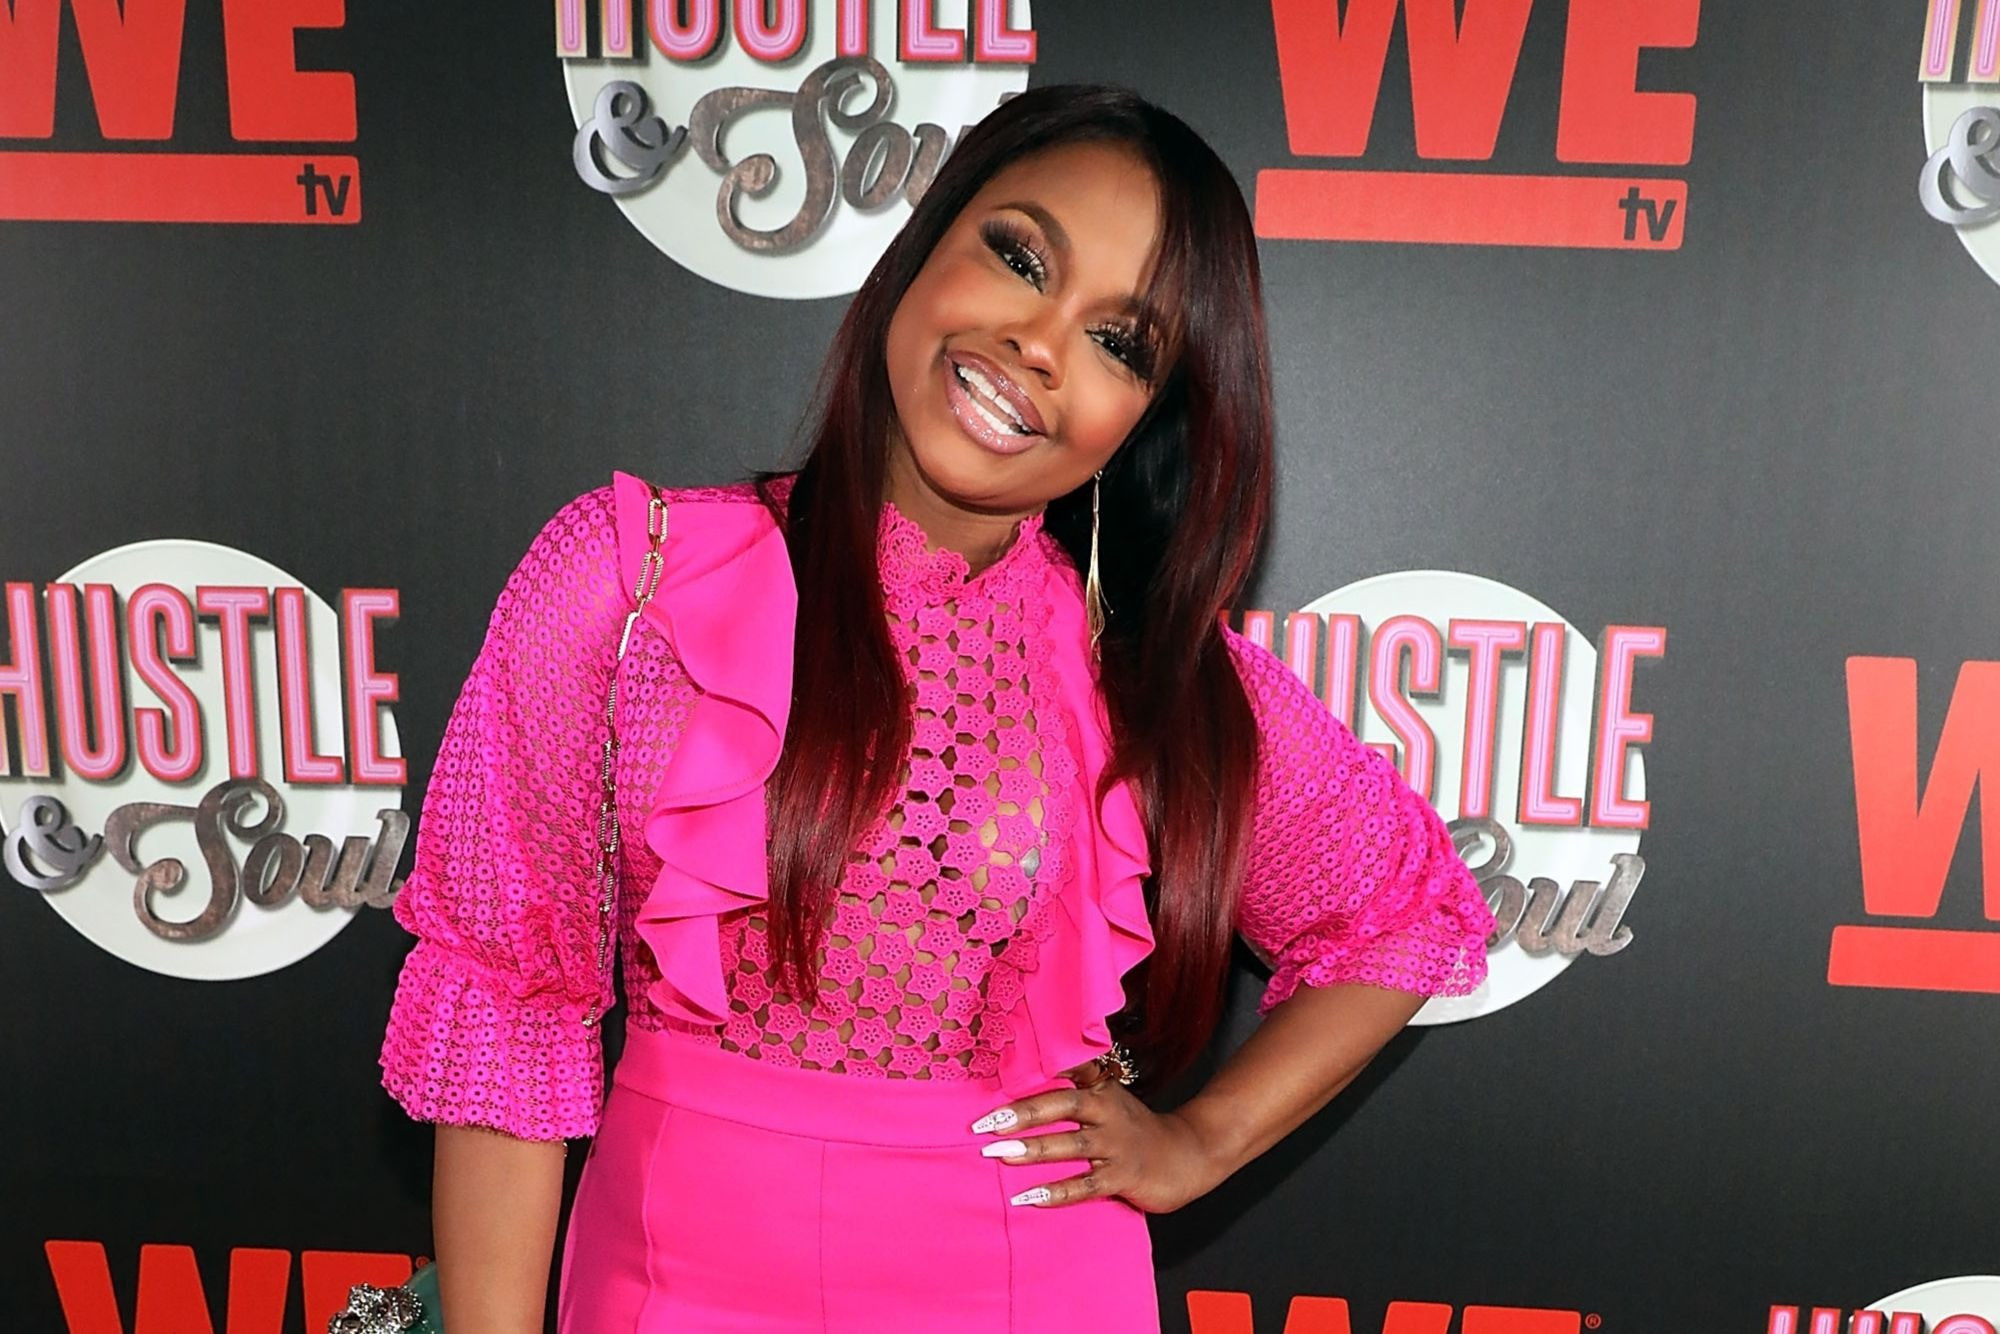 Phaedra Parks Talks About Self Care And Self Love - See Her Important Message